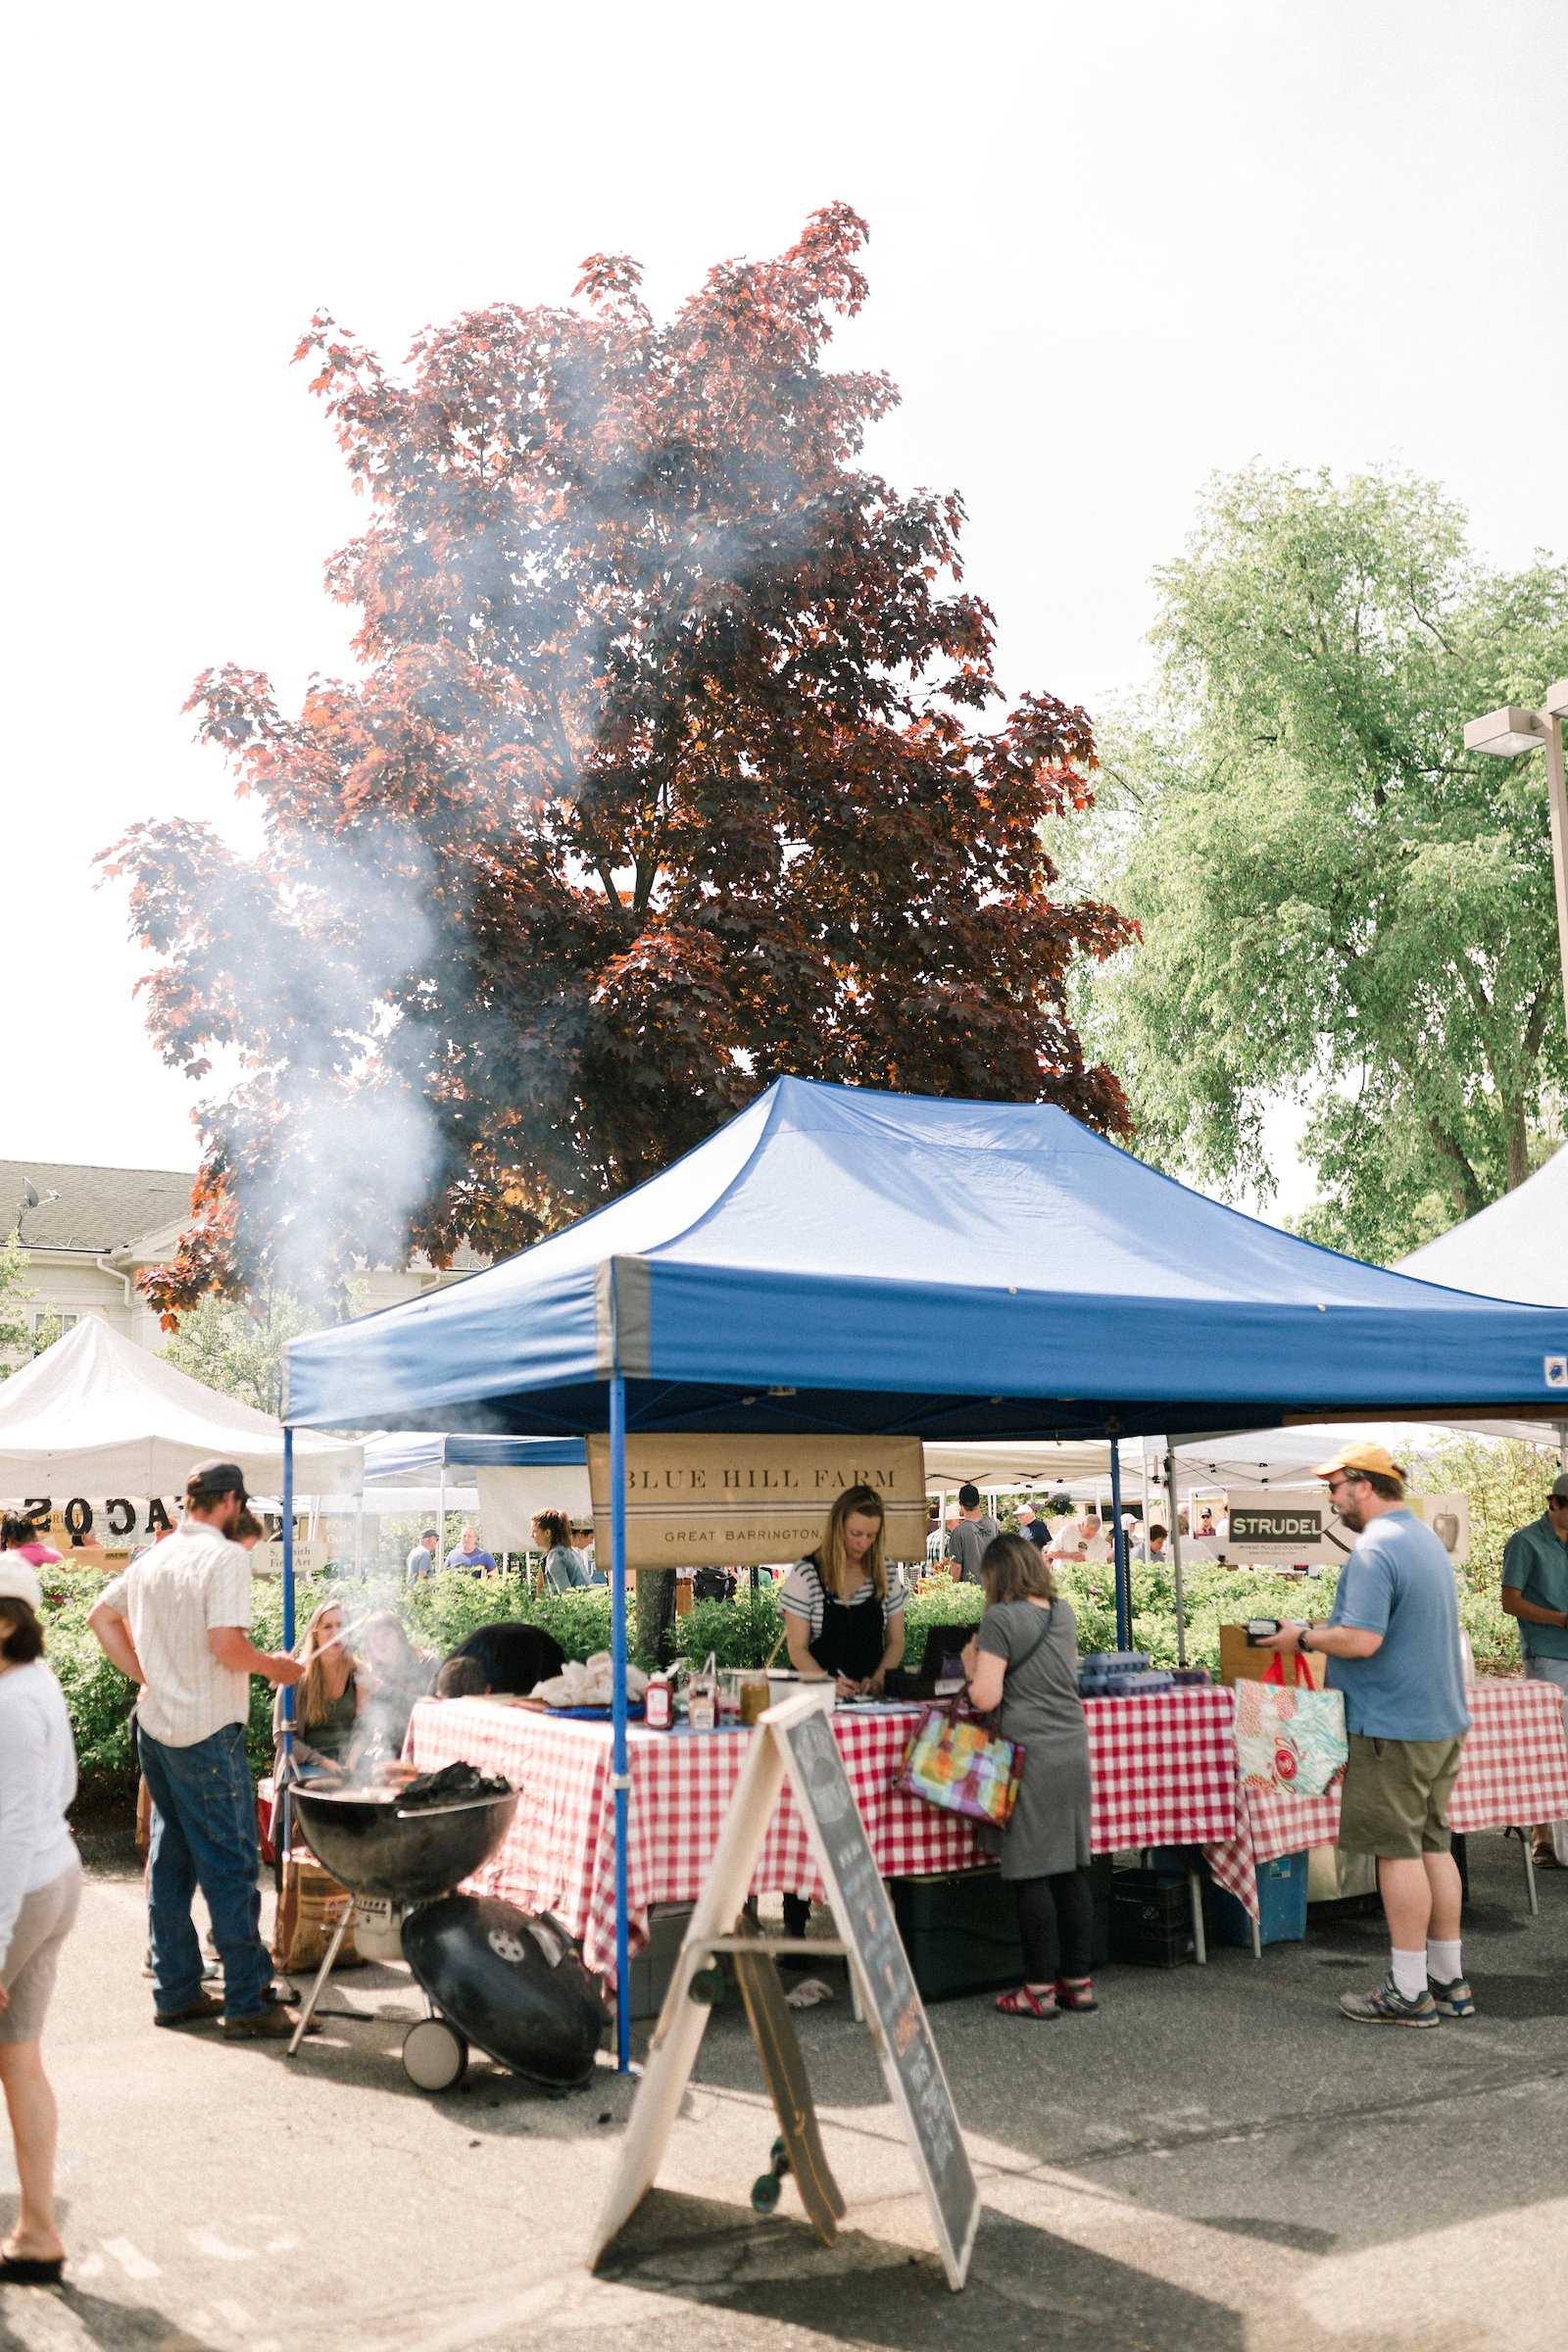 180524_Berkshire Farmers Markets_113.jpg